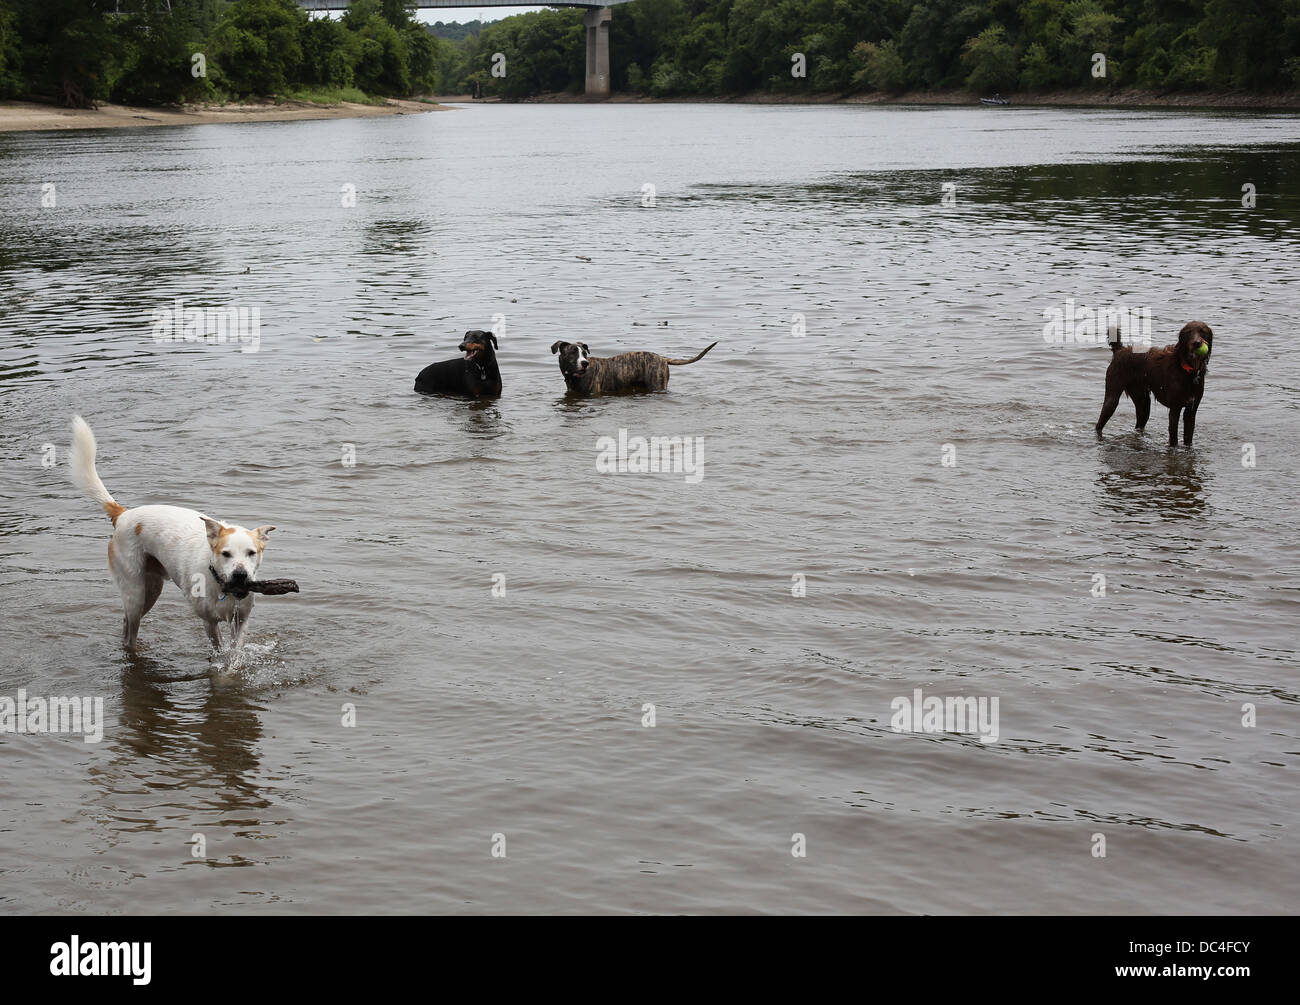 Dogs playing in water at a dog park. - Stock Image